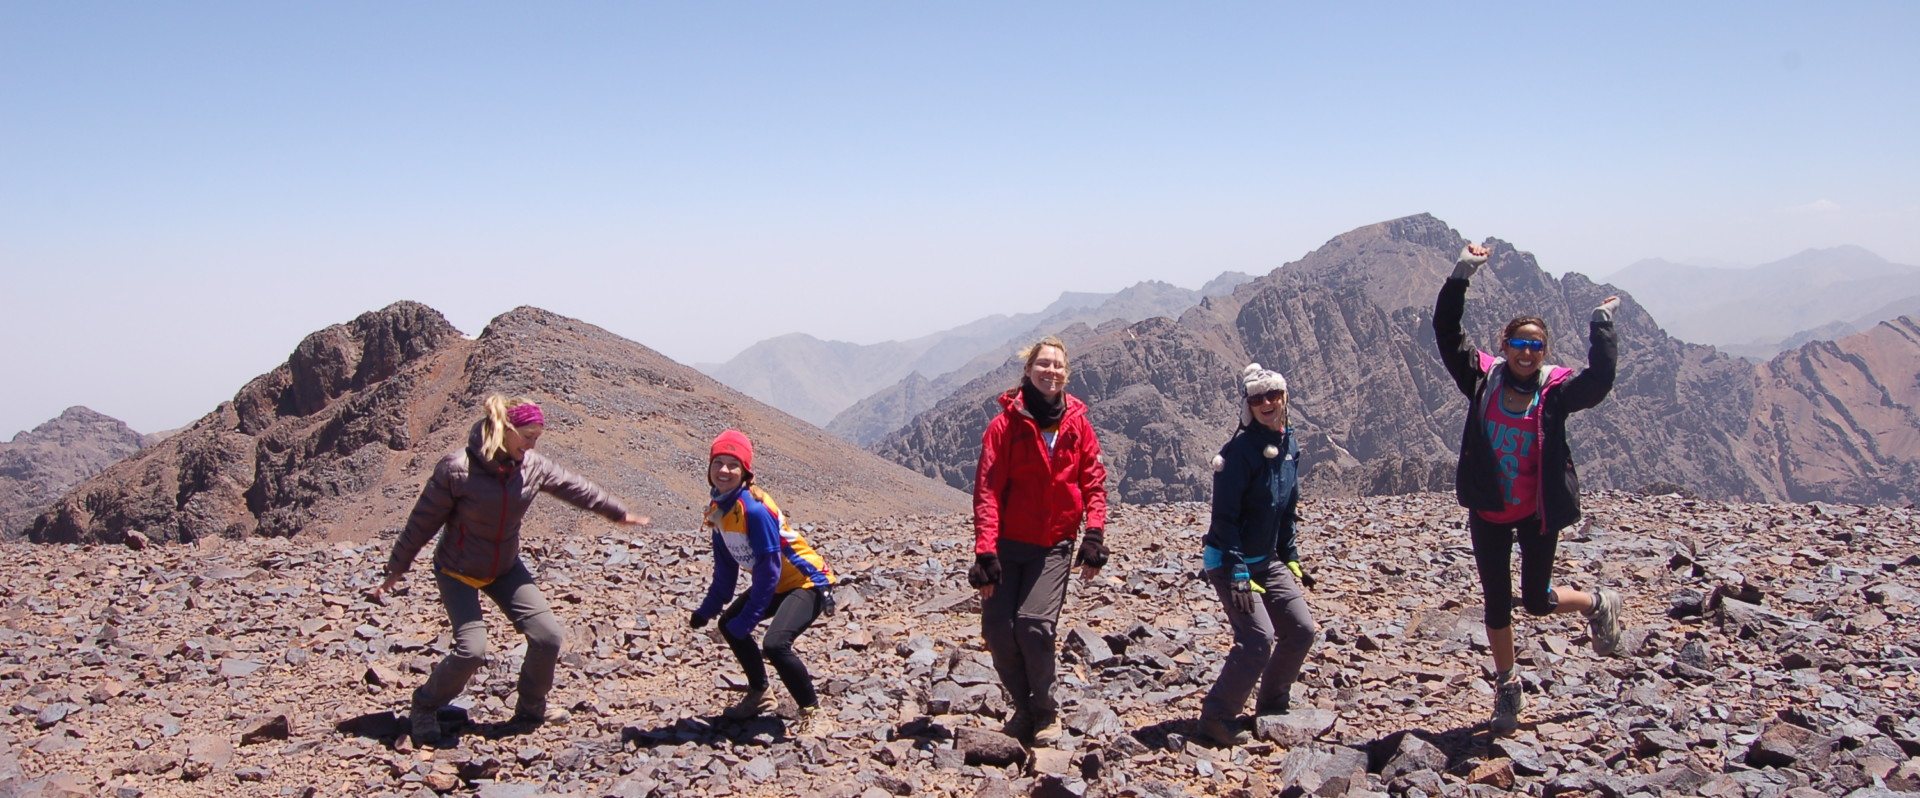 Four people jumping in the air in the Atlas Mountains